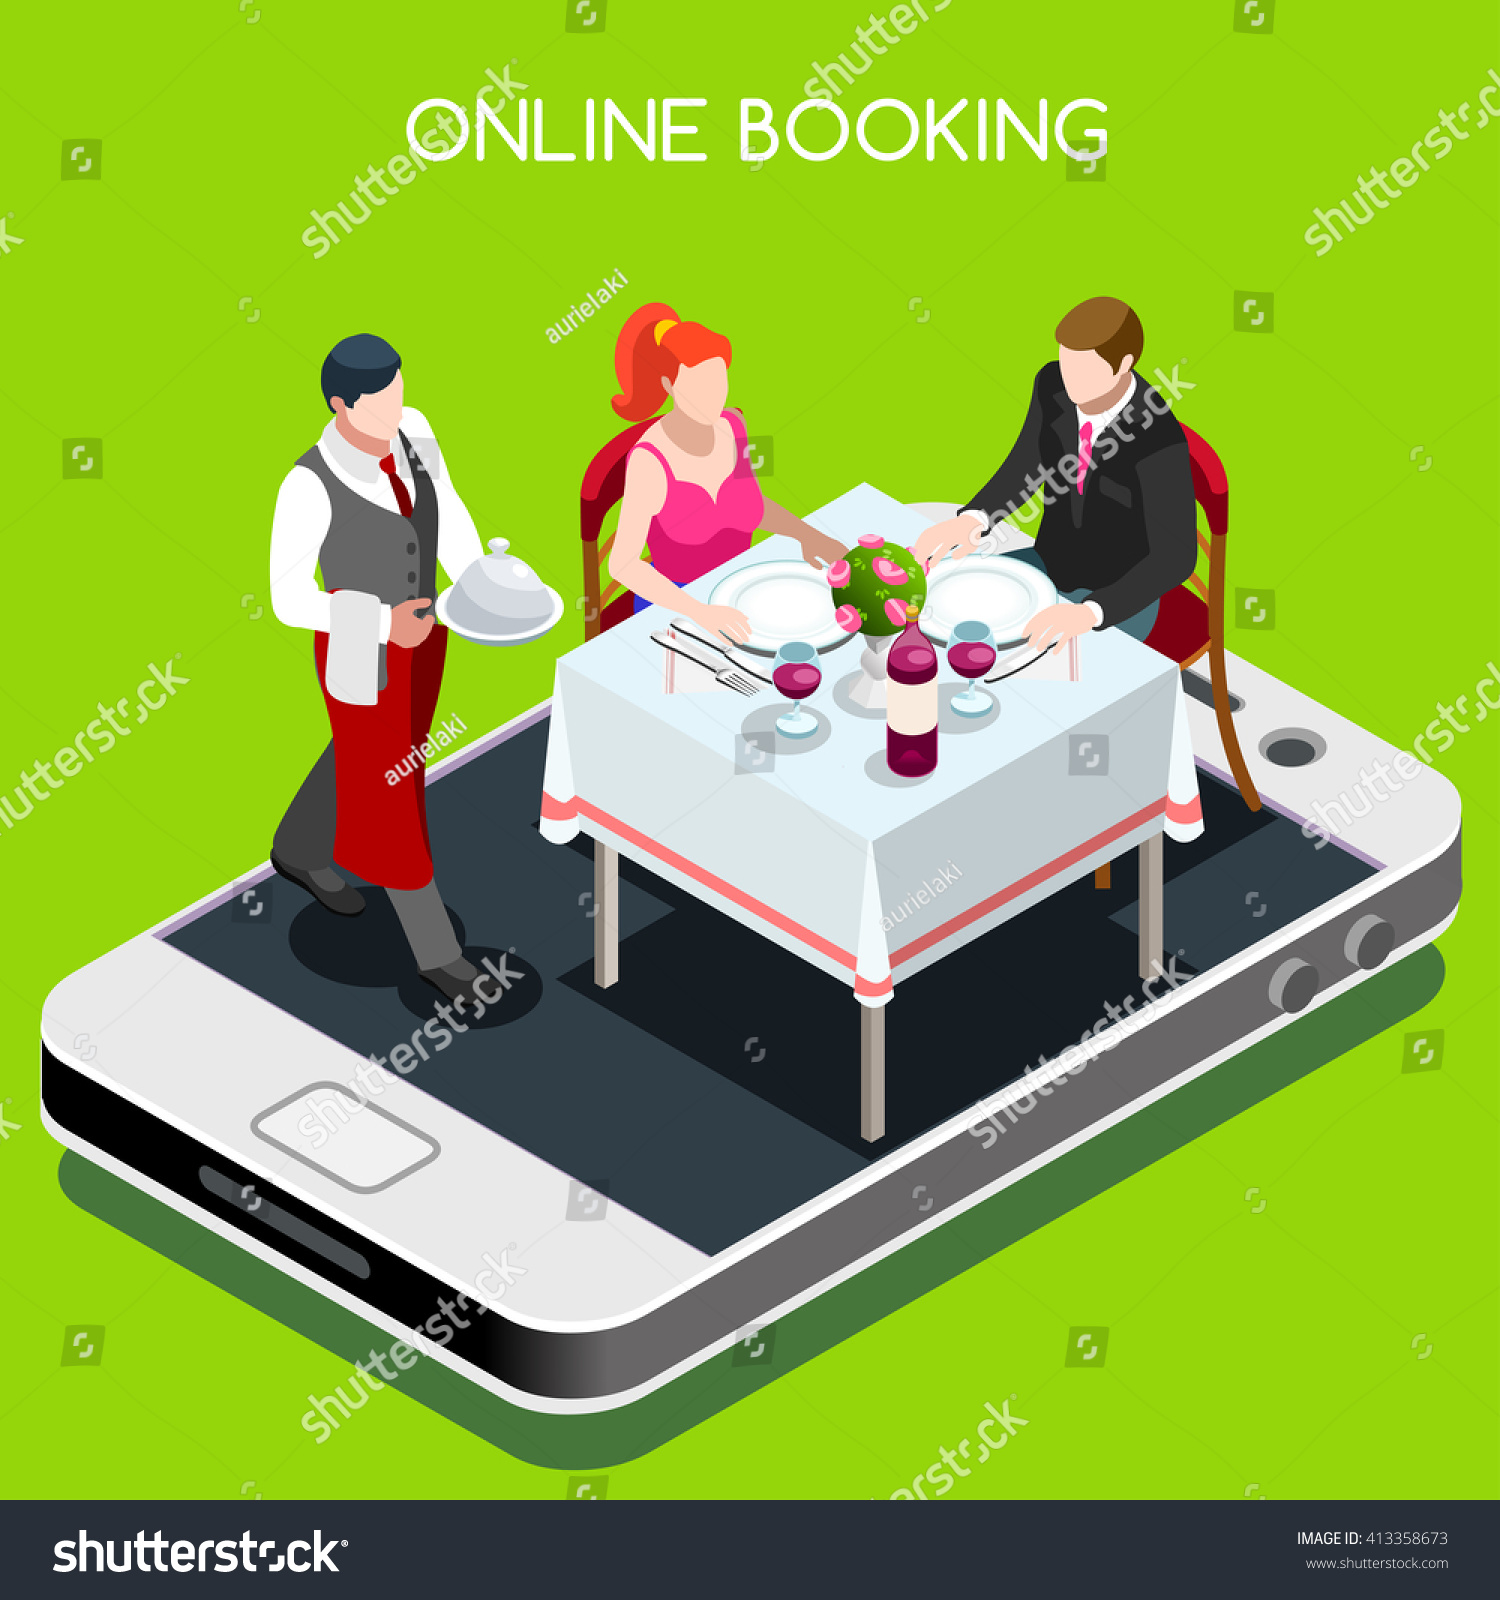 Online web book dining table dinner stock vector 413358673 shutterstock - Book a restaurant table online ...